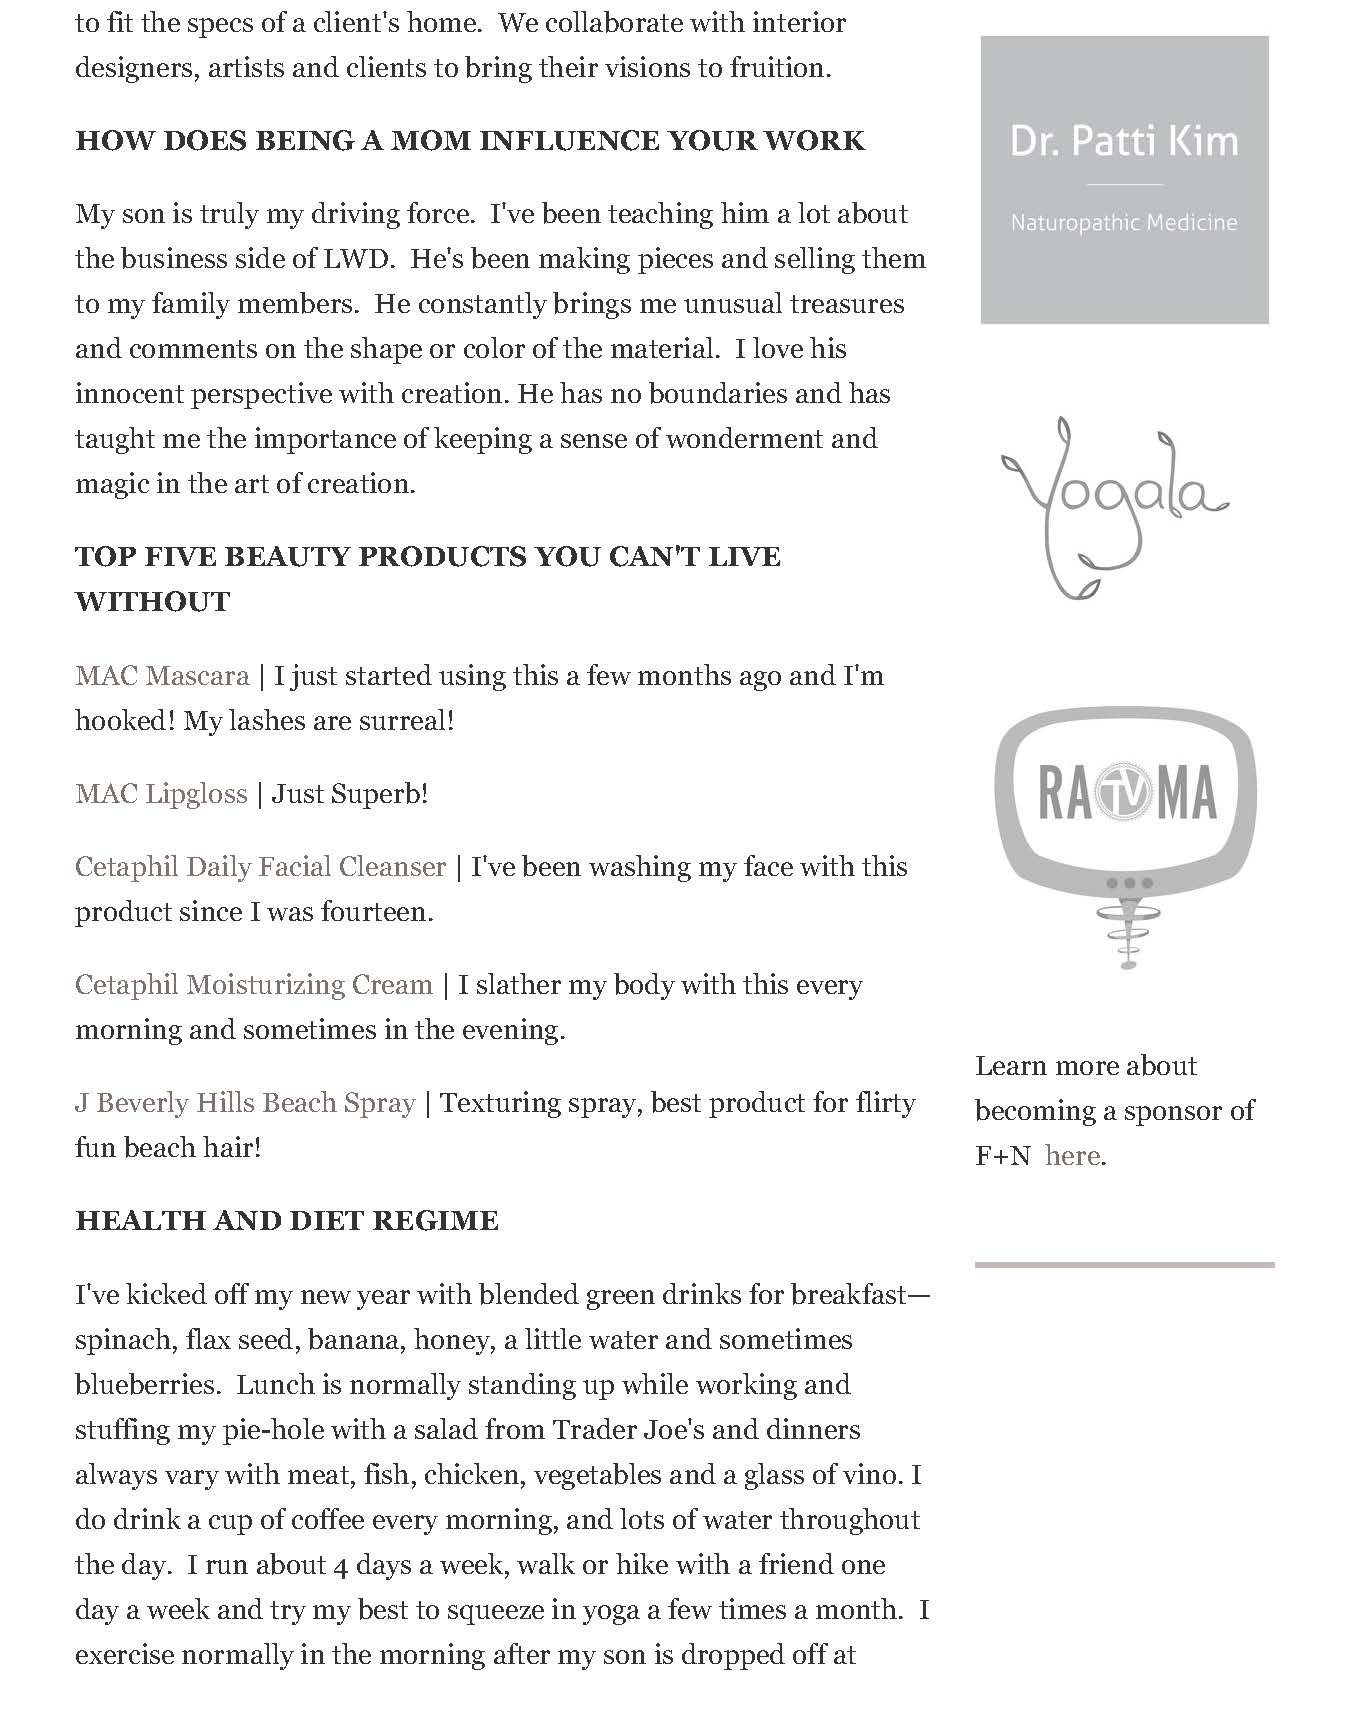 Heather Pando | Little World Design — Free + Native | a modern guide for holistic living_Page_3.jpg